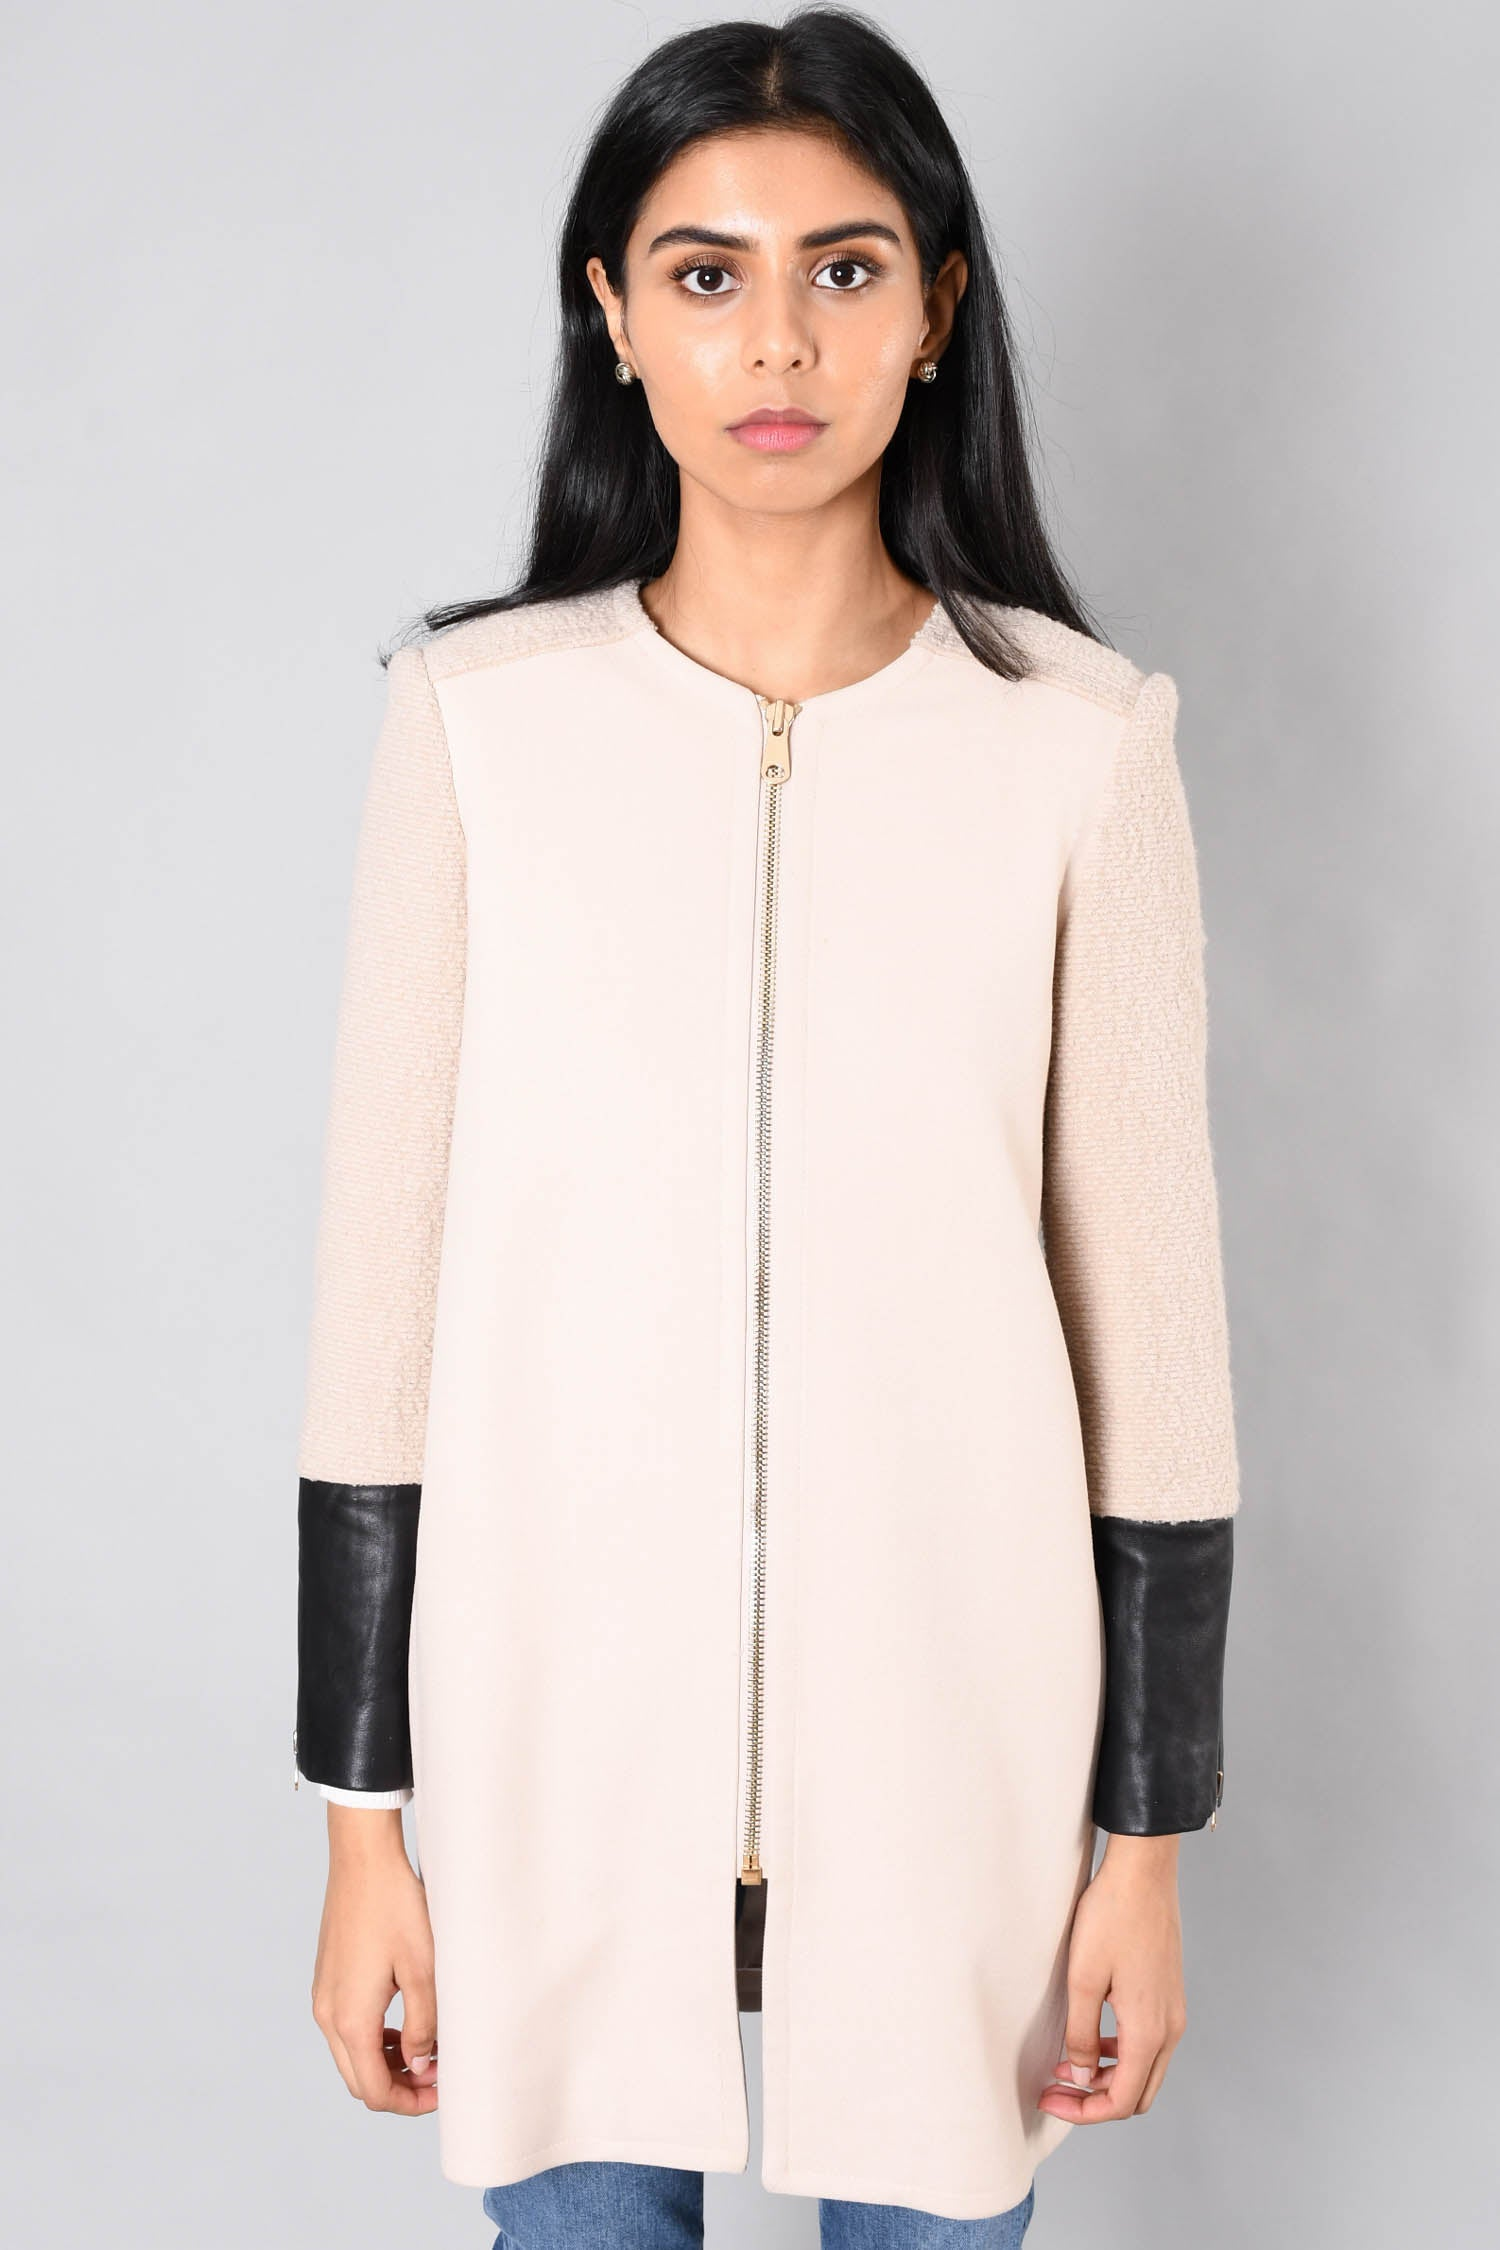 Club Monaco Cream Faye Coat w/ Leather Cuffs Size XS